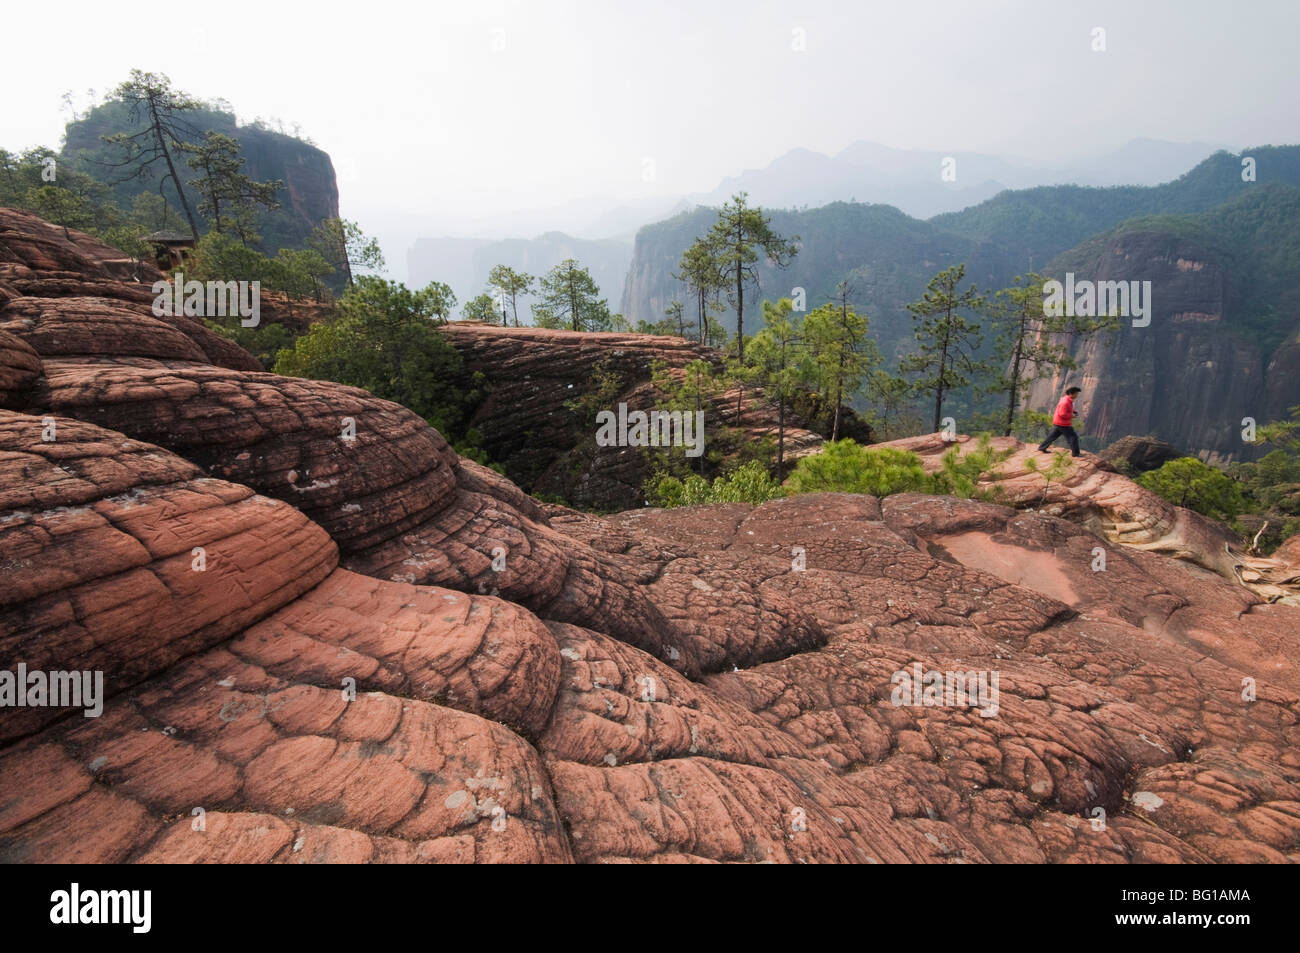 1000 Turtles Mountain in Three Parallel Gorges National Park, UNESCO World Heritage Site, Liming town, Yunnan Province, - Stock Image